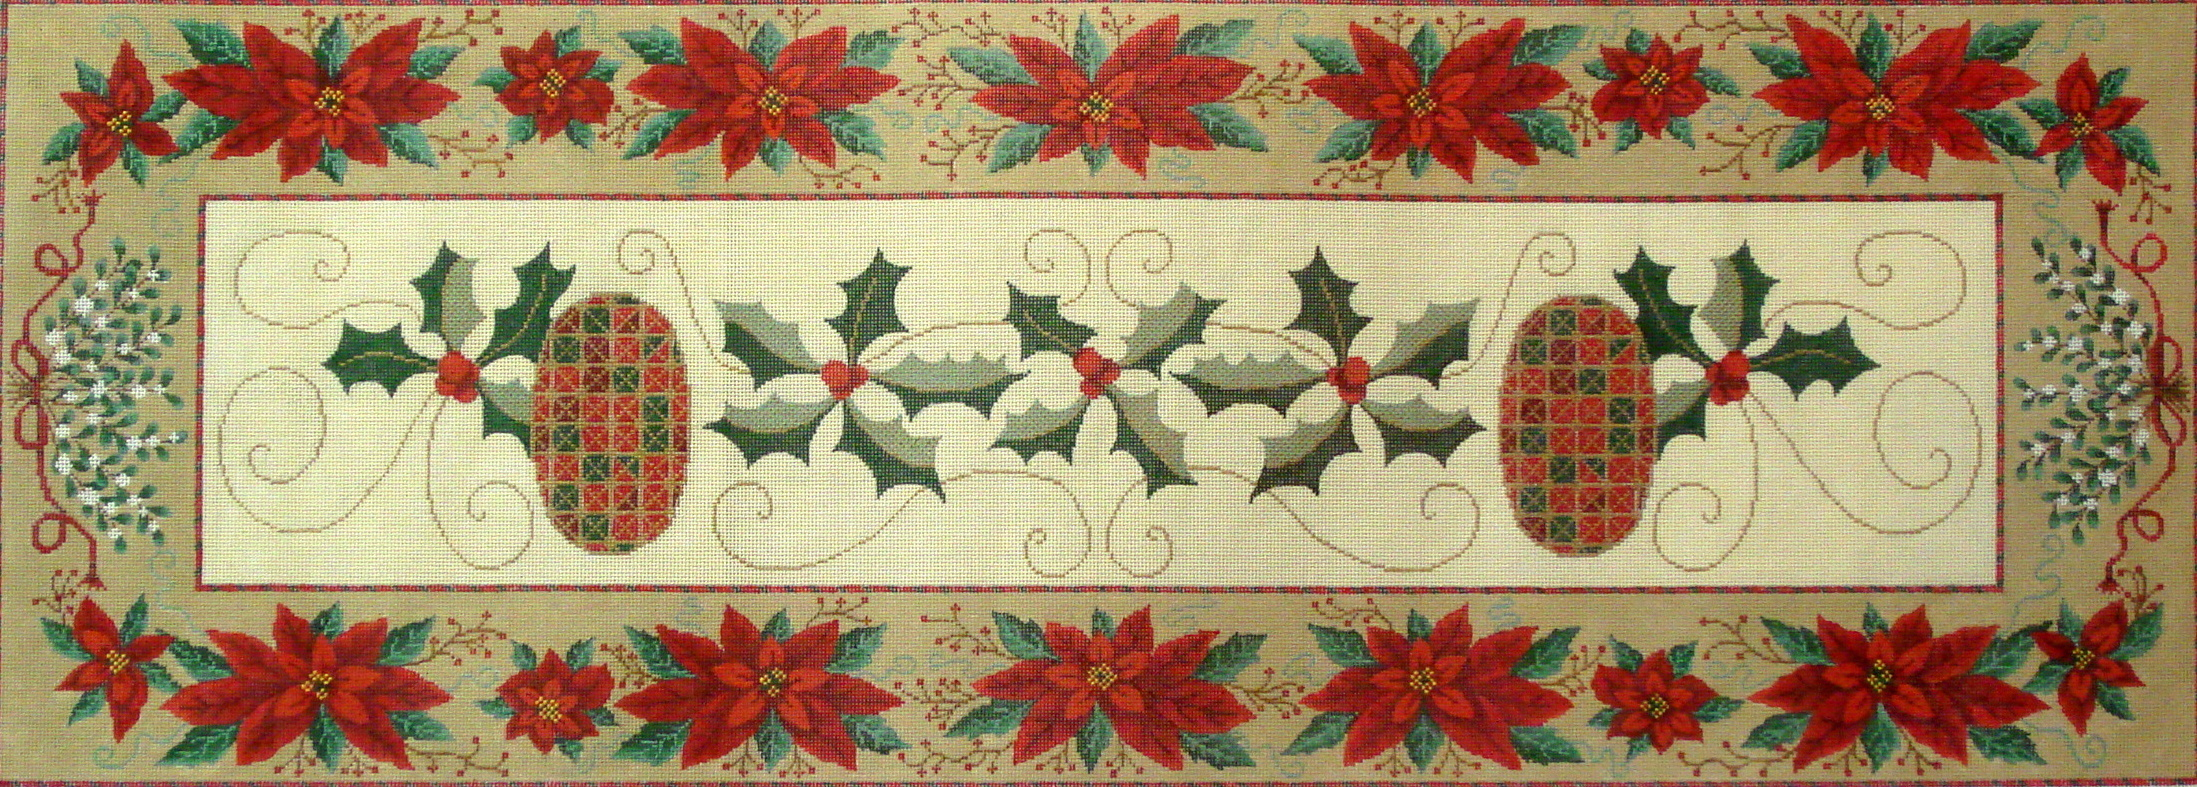 Christmas Table Runner   (A Needlepoint Alley canvas exclusive) 17*NPA